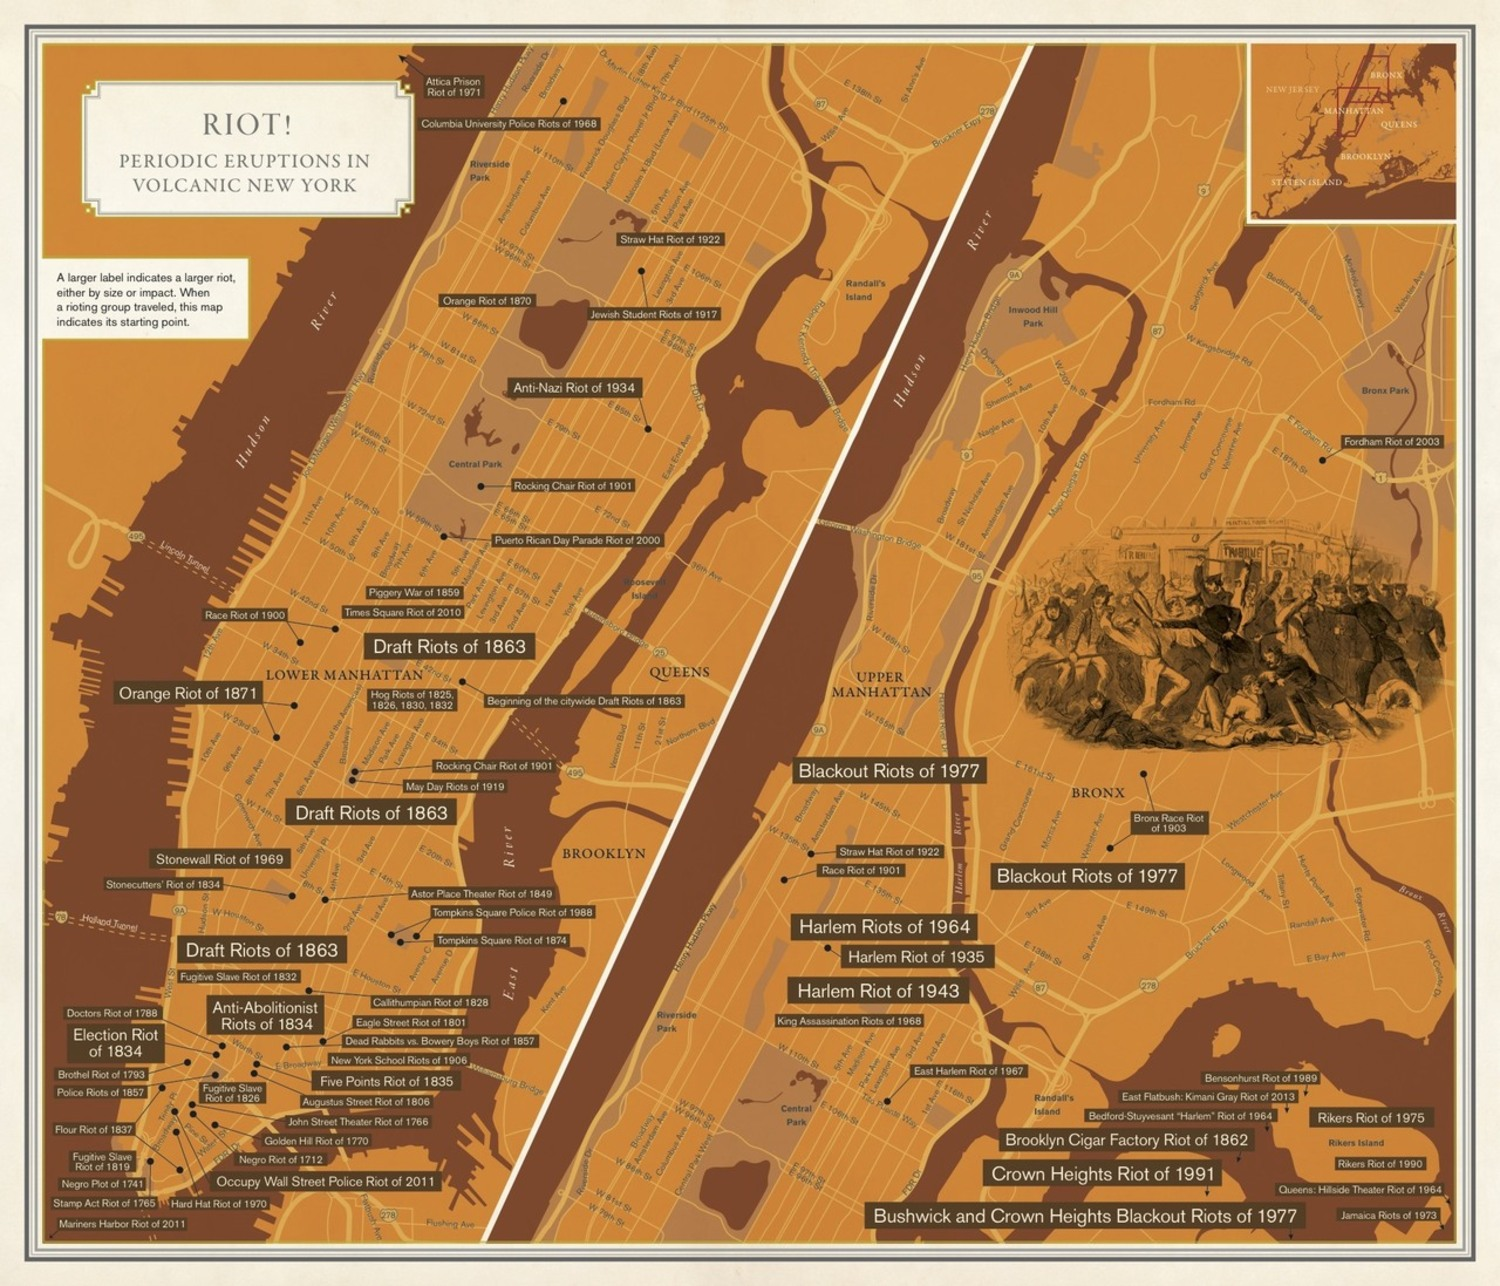 Solnits Subway Map Video.This Map Shows Locations Of All Of New York City S Major Riots Since